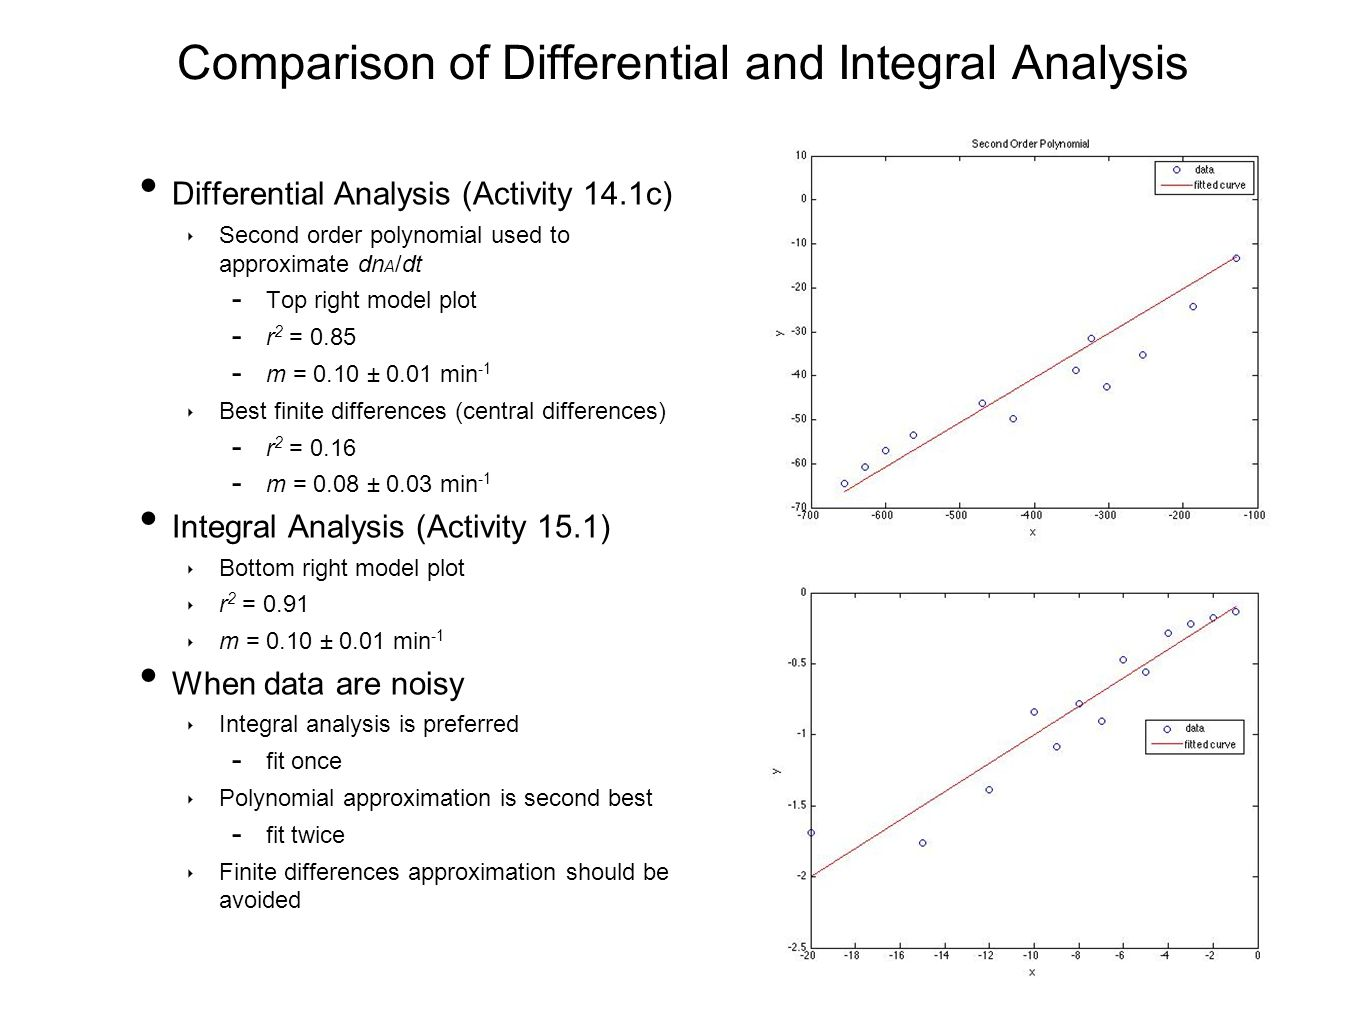 Comparison of Differential and Integral Analysis Differential Analysis (Activity 14.1c) ‣ Second order polynomial used to approximate dn A /dt  Top right model plot  r 2 = 0.85  m = 0.10 ± 0.01 min -1 ‣ Best finite differences (central differences)  r 2 = 0.16  m = 0.08 ± 0.03 min -1 Integral Analysis (Activity 15.1) ‣ Bottom right model plot ‣ r 2 = 0.91 ‣ m = 0.10 ± 0.01 min -1 When data are noisy ‣ Integral analysis is preferred  fit once ‣ Polynomial approximation is second best  fit twice ‣ Finite differences approximation should be avoided